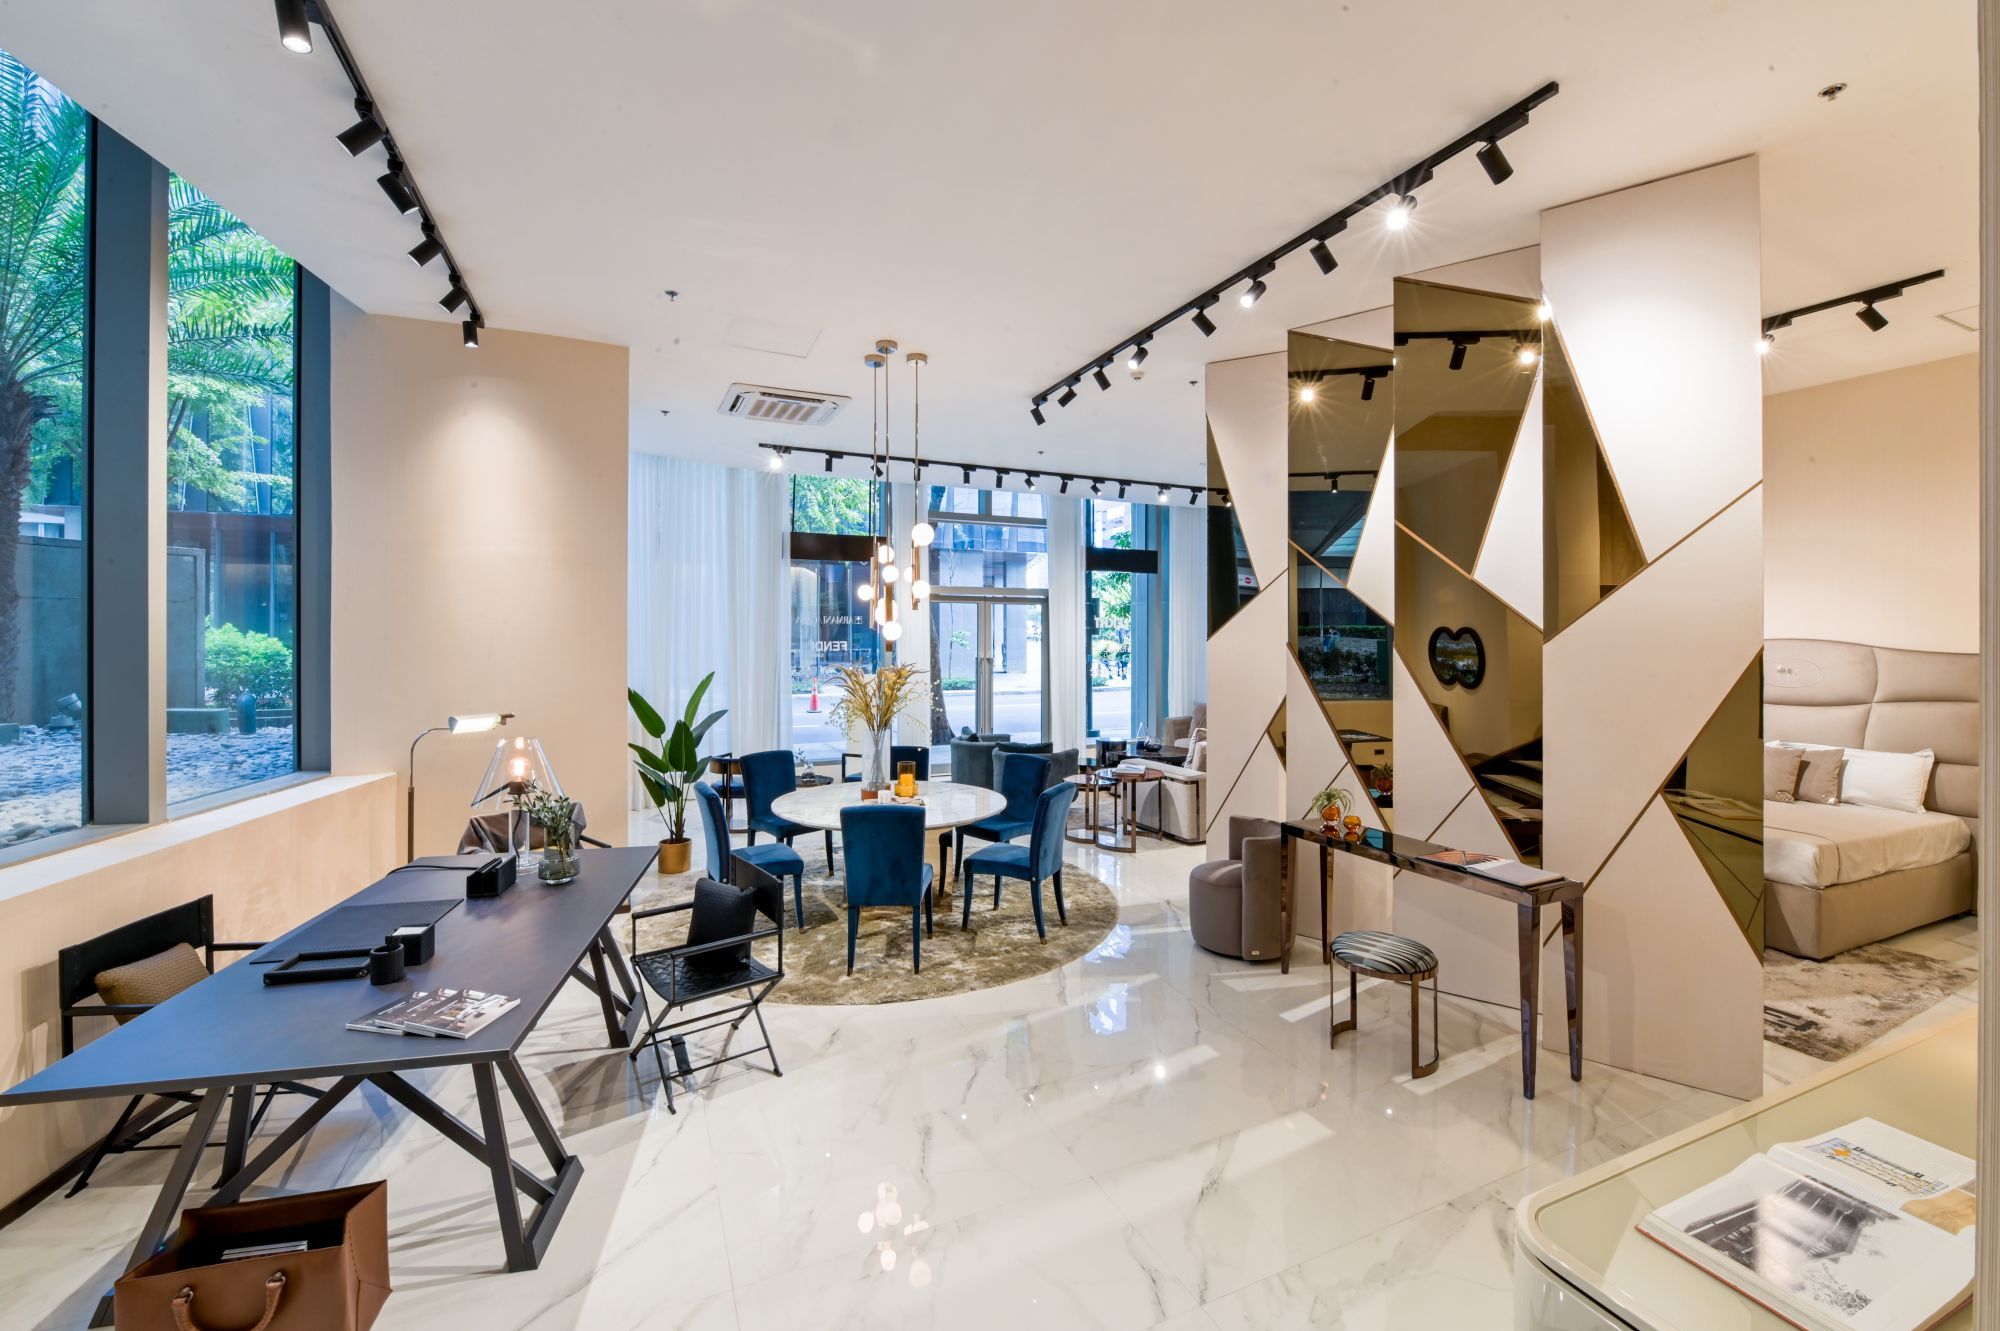 Interior Design: The Sovrano Showroom Brings Luxury To Your Home This 2020